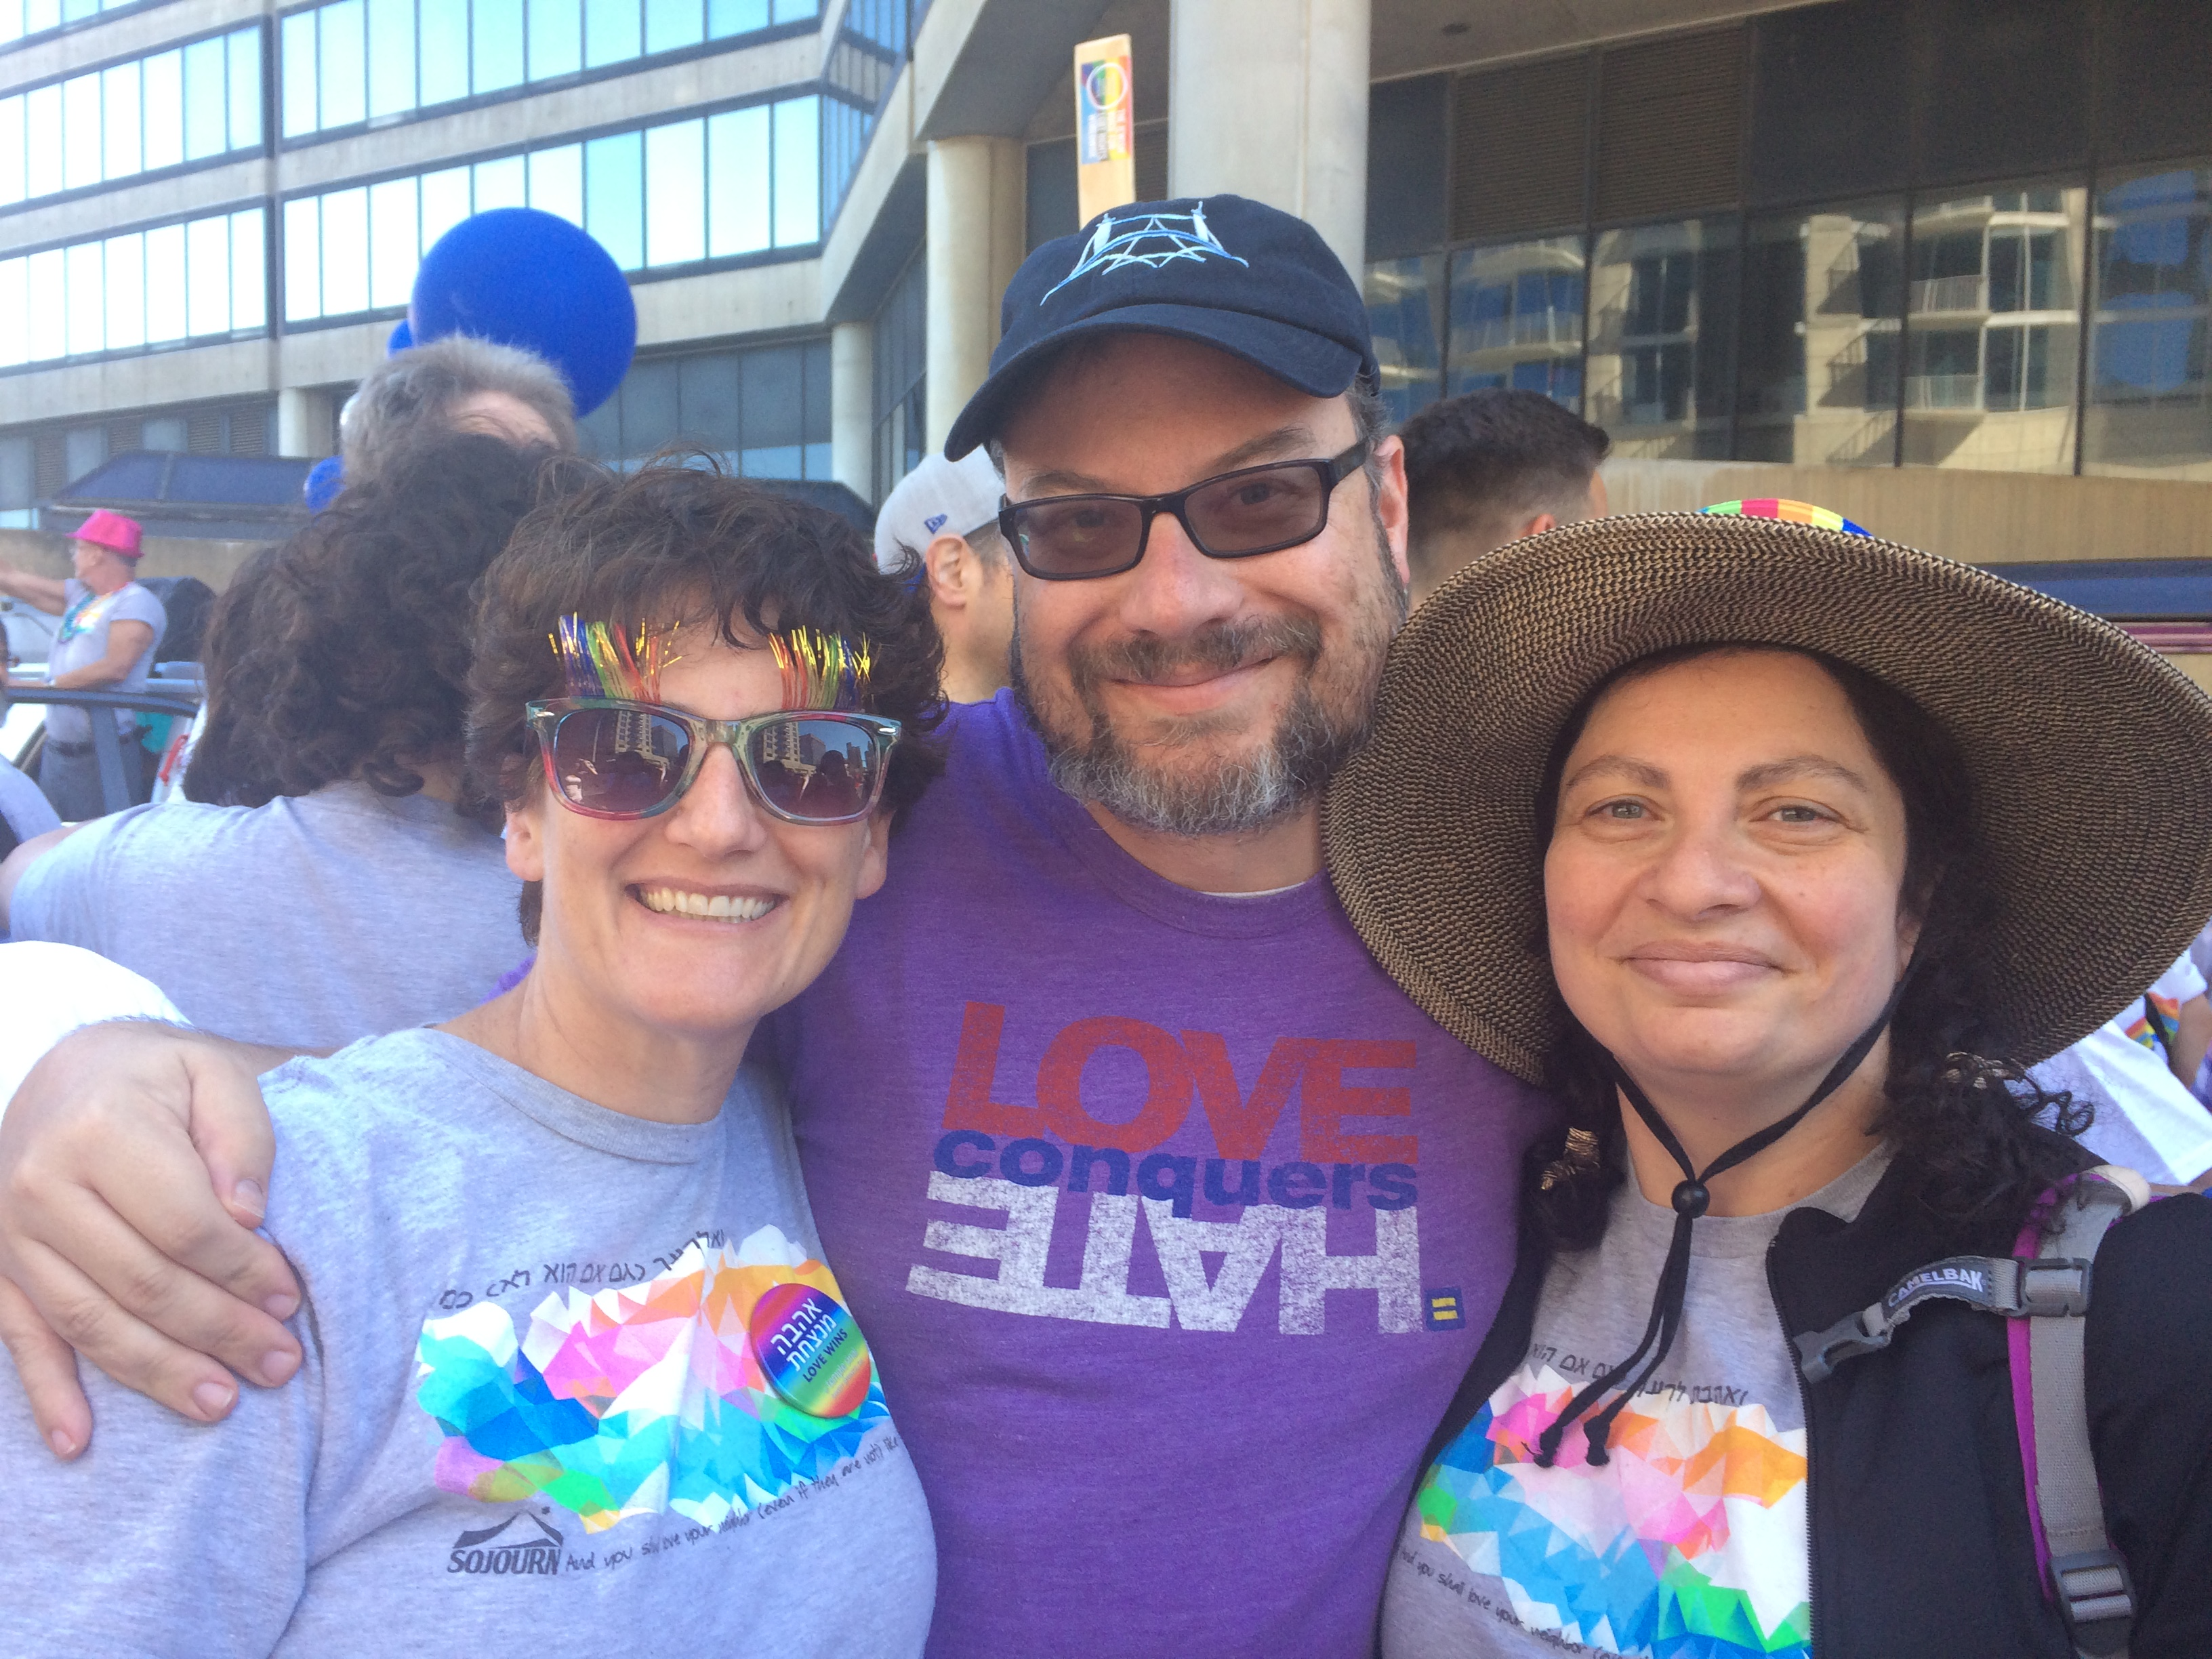 Atlanta Rabbis Without Borders (right to left): Ruth Abusch-Magder, Michael Bernstein and Pamela Gottfried